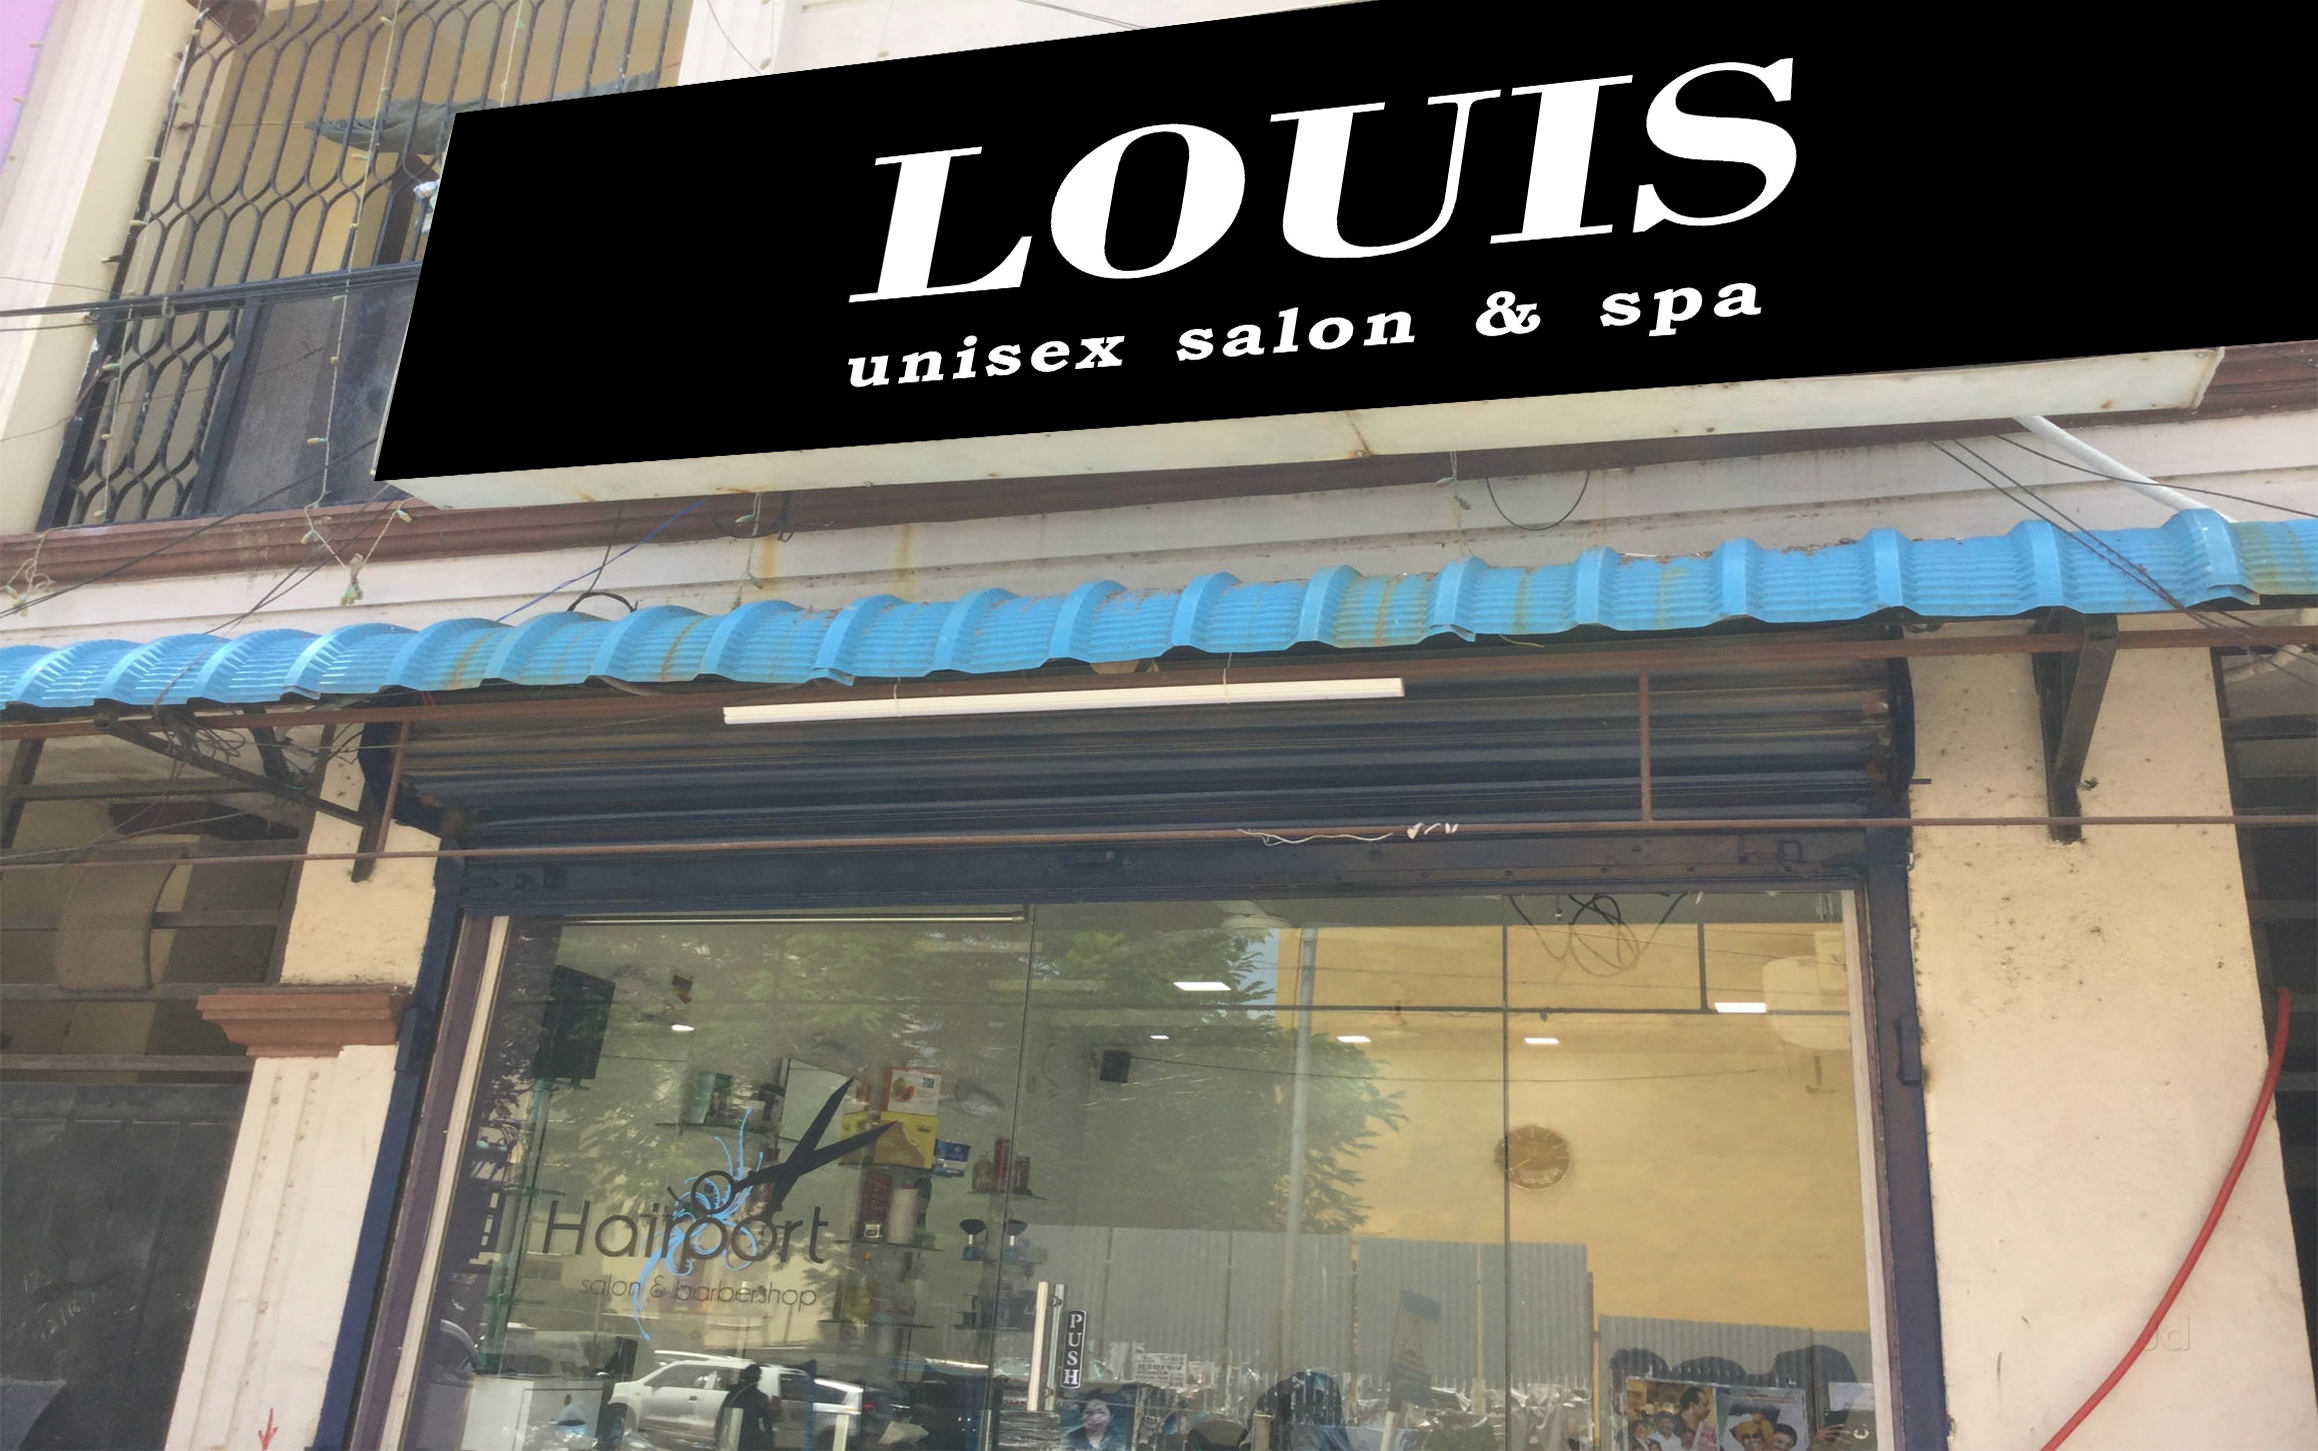 louis+unisex+salon+dubai 31